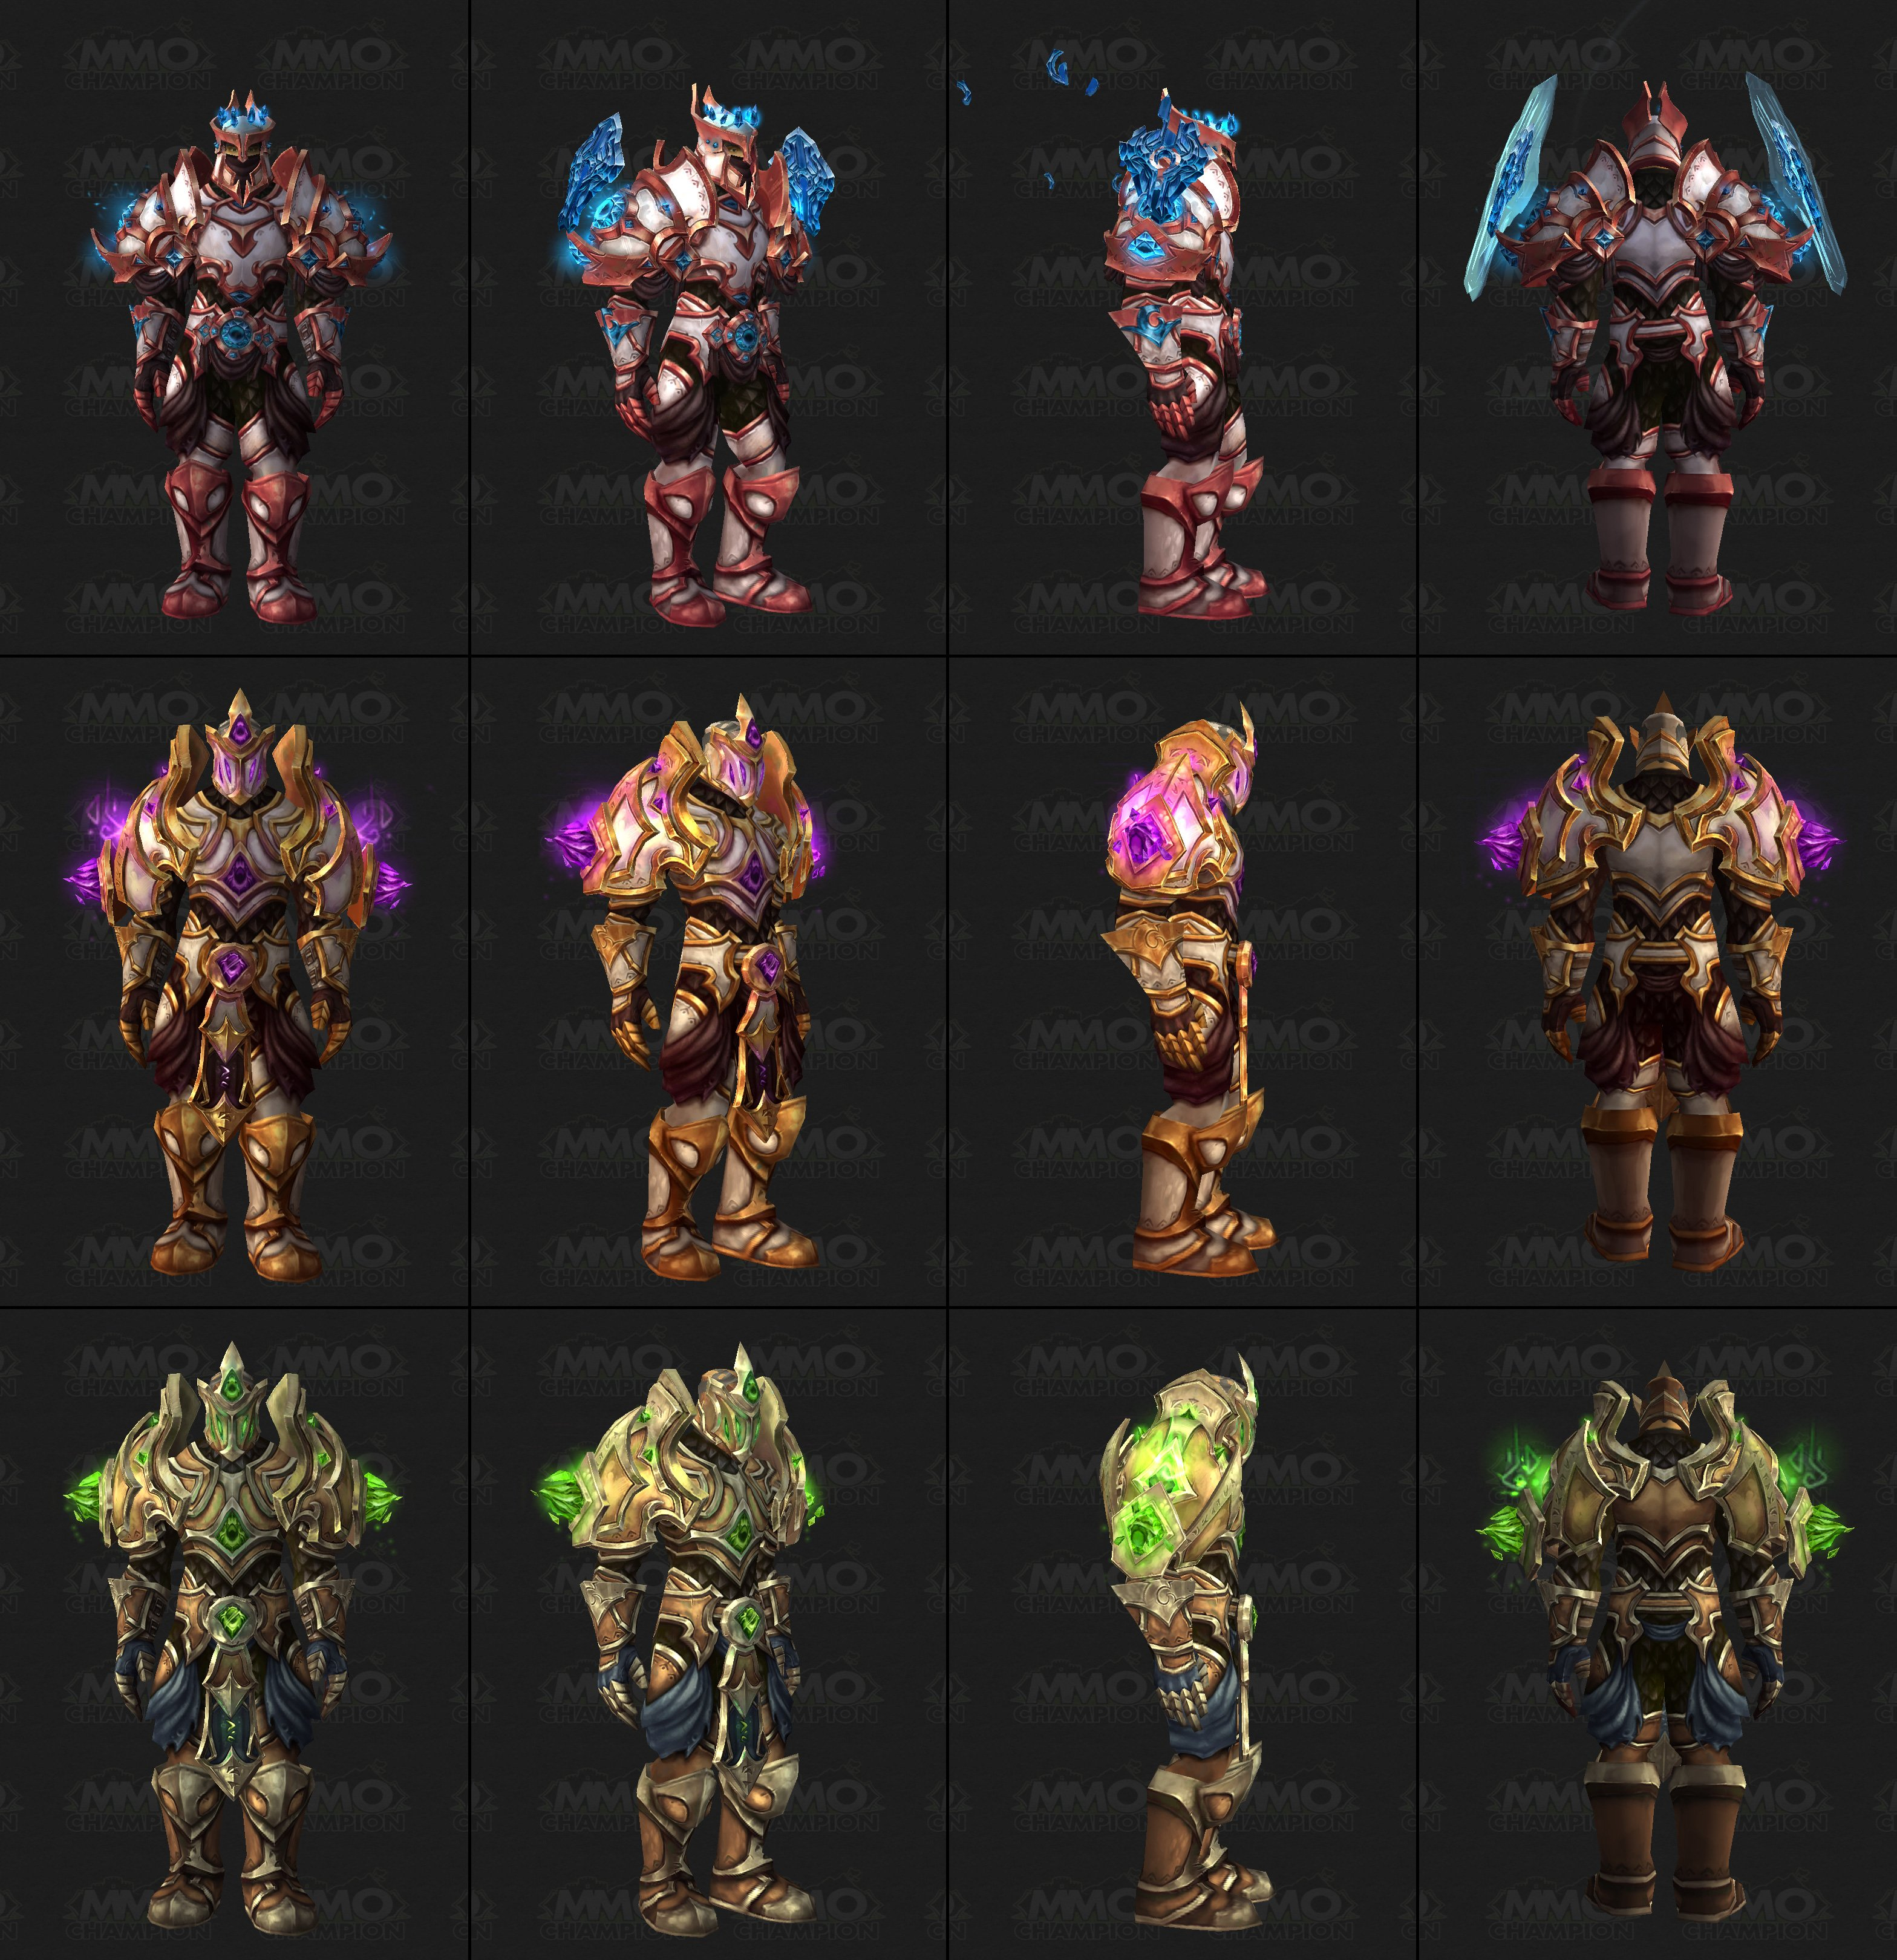 Warlords of Draenor - Tier 17 Armor Sets - MMO-Champion